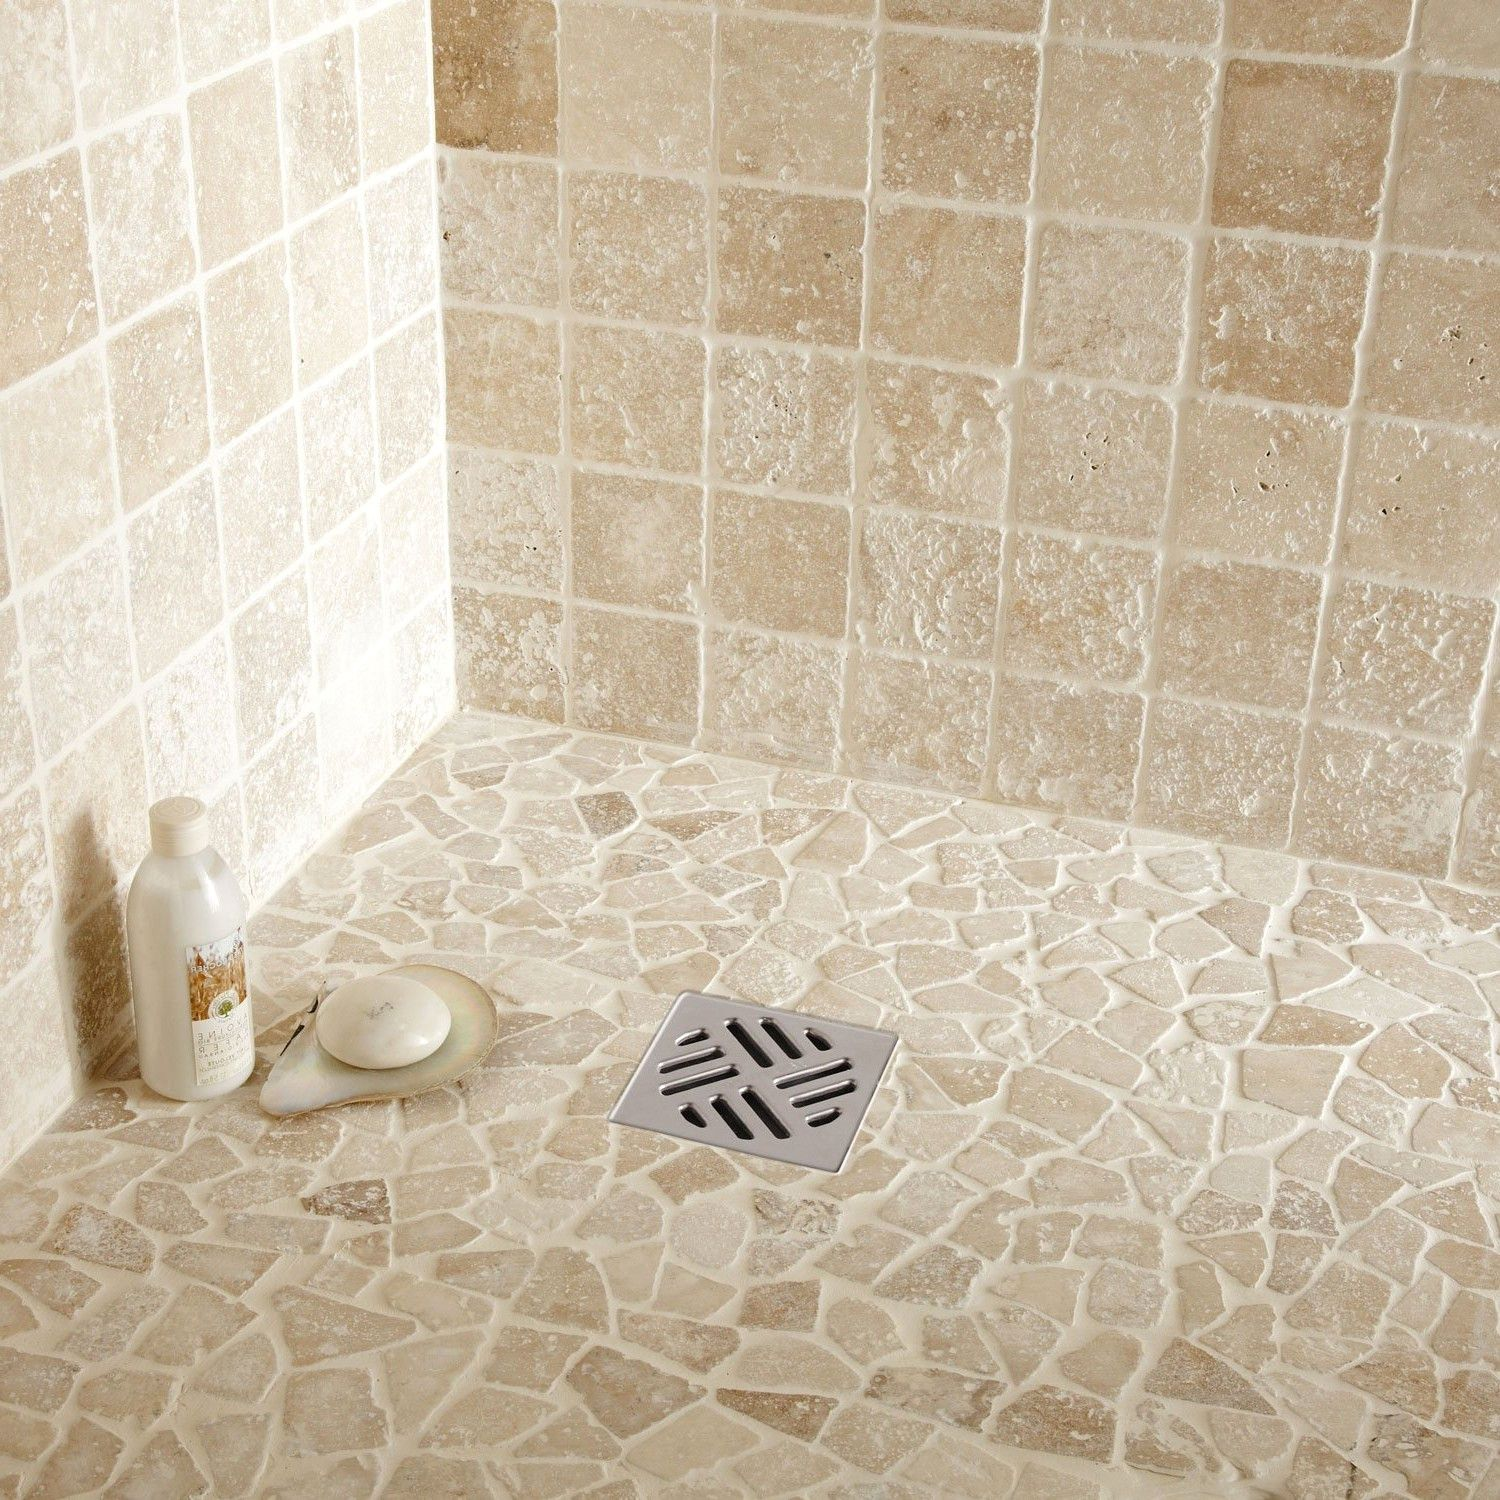 Related Image Tile Floor Flooring Bathroom